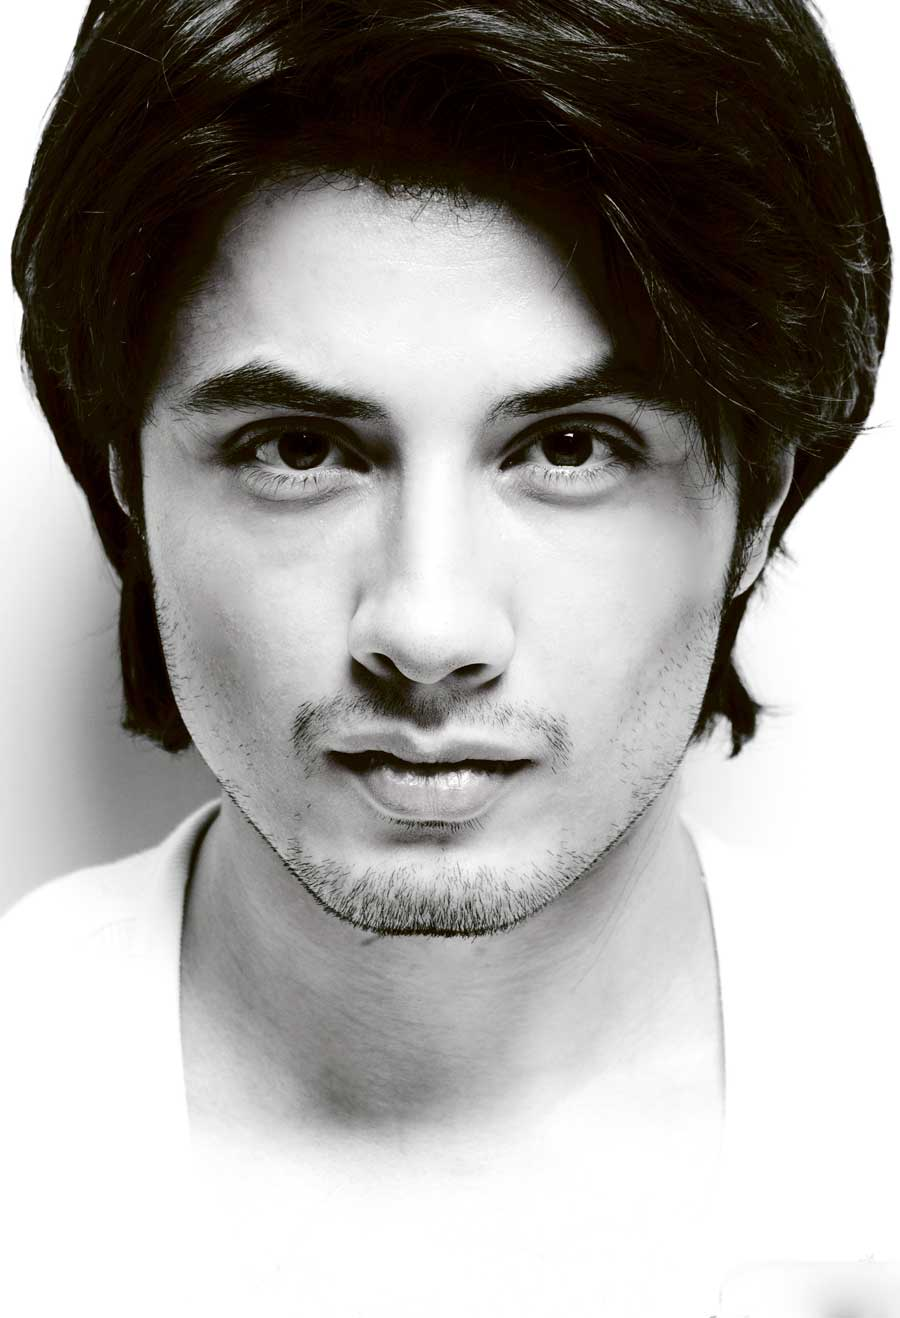 Quotes For Iphone 5 Wallpaper Ali Zafar Hairstyle Pics Popopics Com